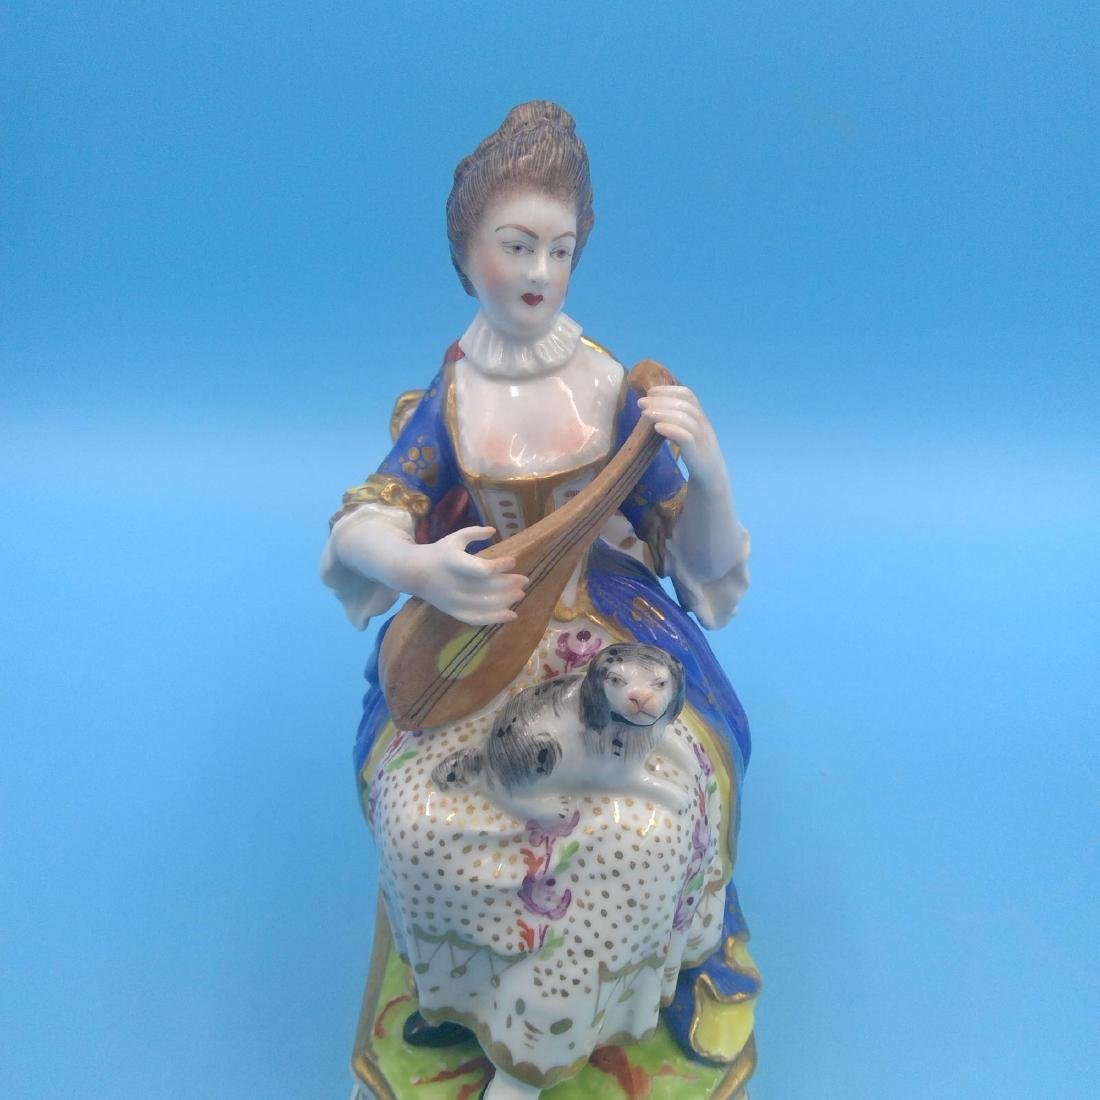 PAIR OF DERBY 18thC ENGLISH PORCELAIN FIGURINES - 5